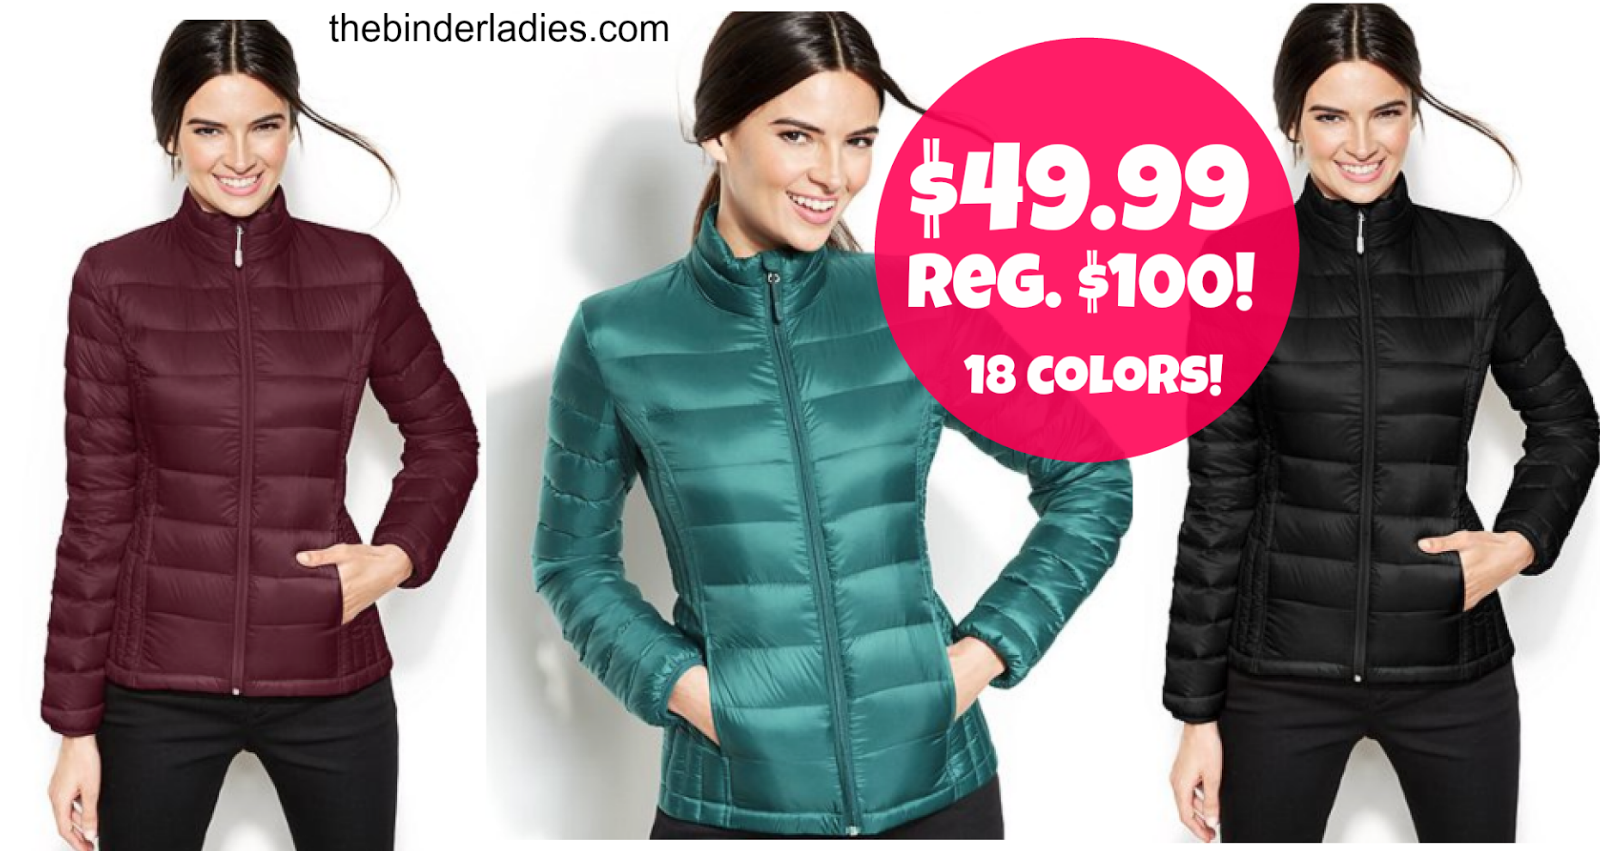 http://www.thebinderladies.com/2014/10/macyscom-32-degrees-packable-quilted.html#.VDVR_0vdtbw